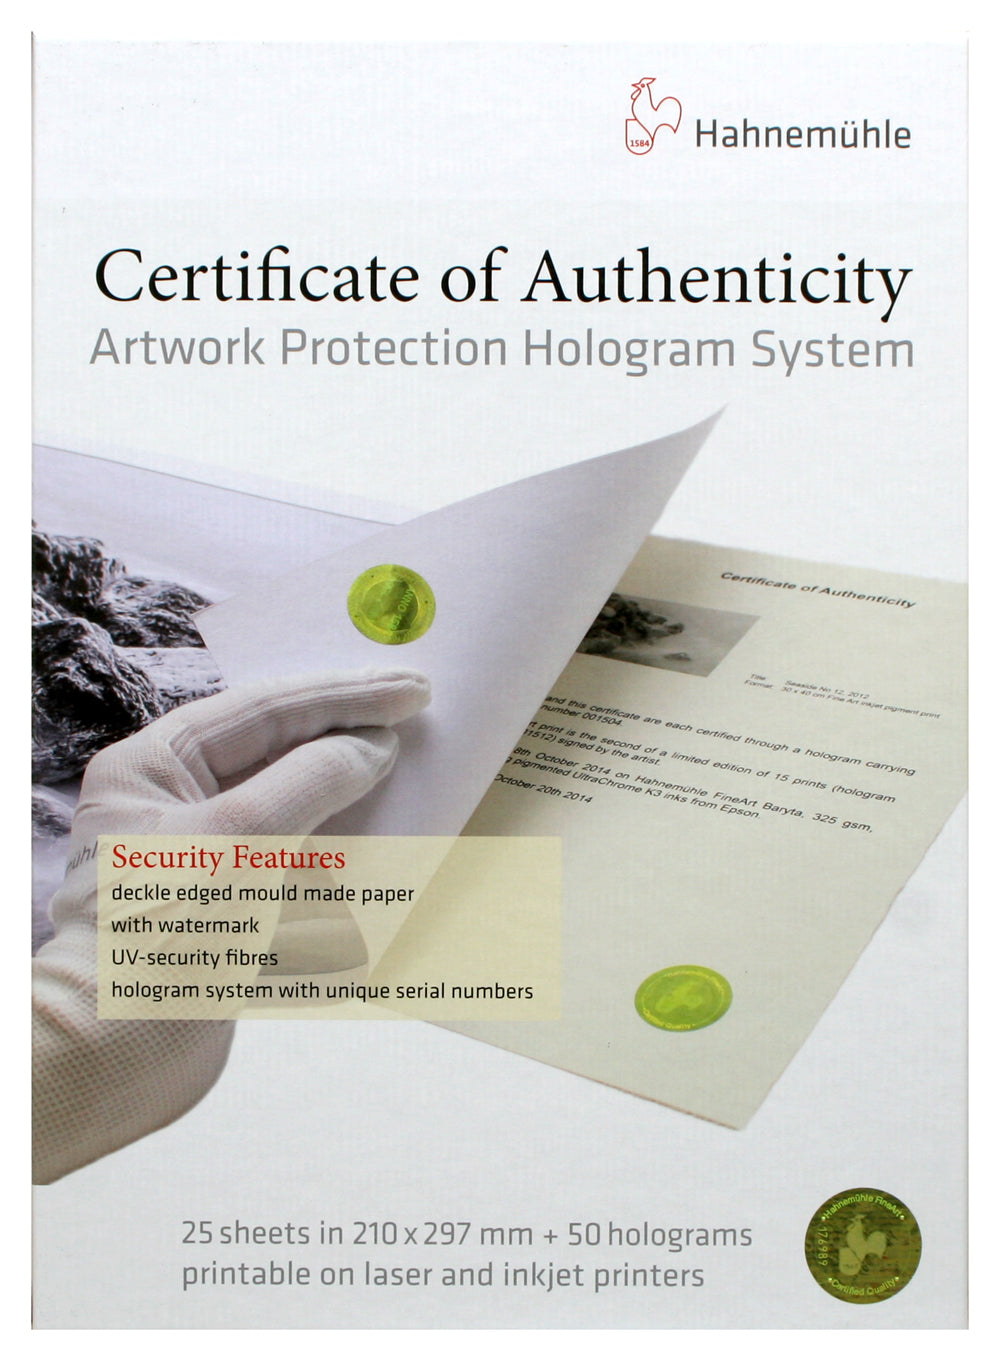 Hahnemühle Certificates of Authenticity 25 Sheets